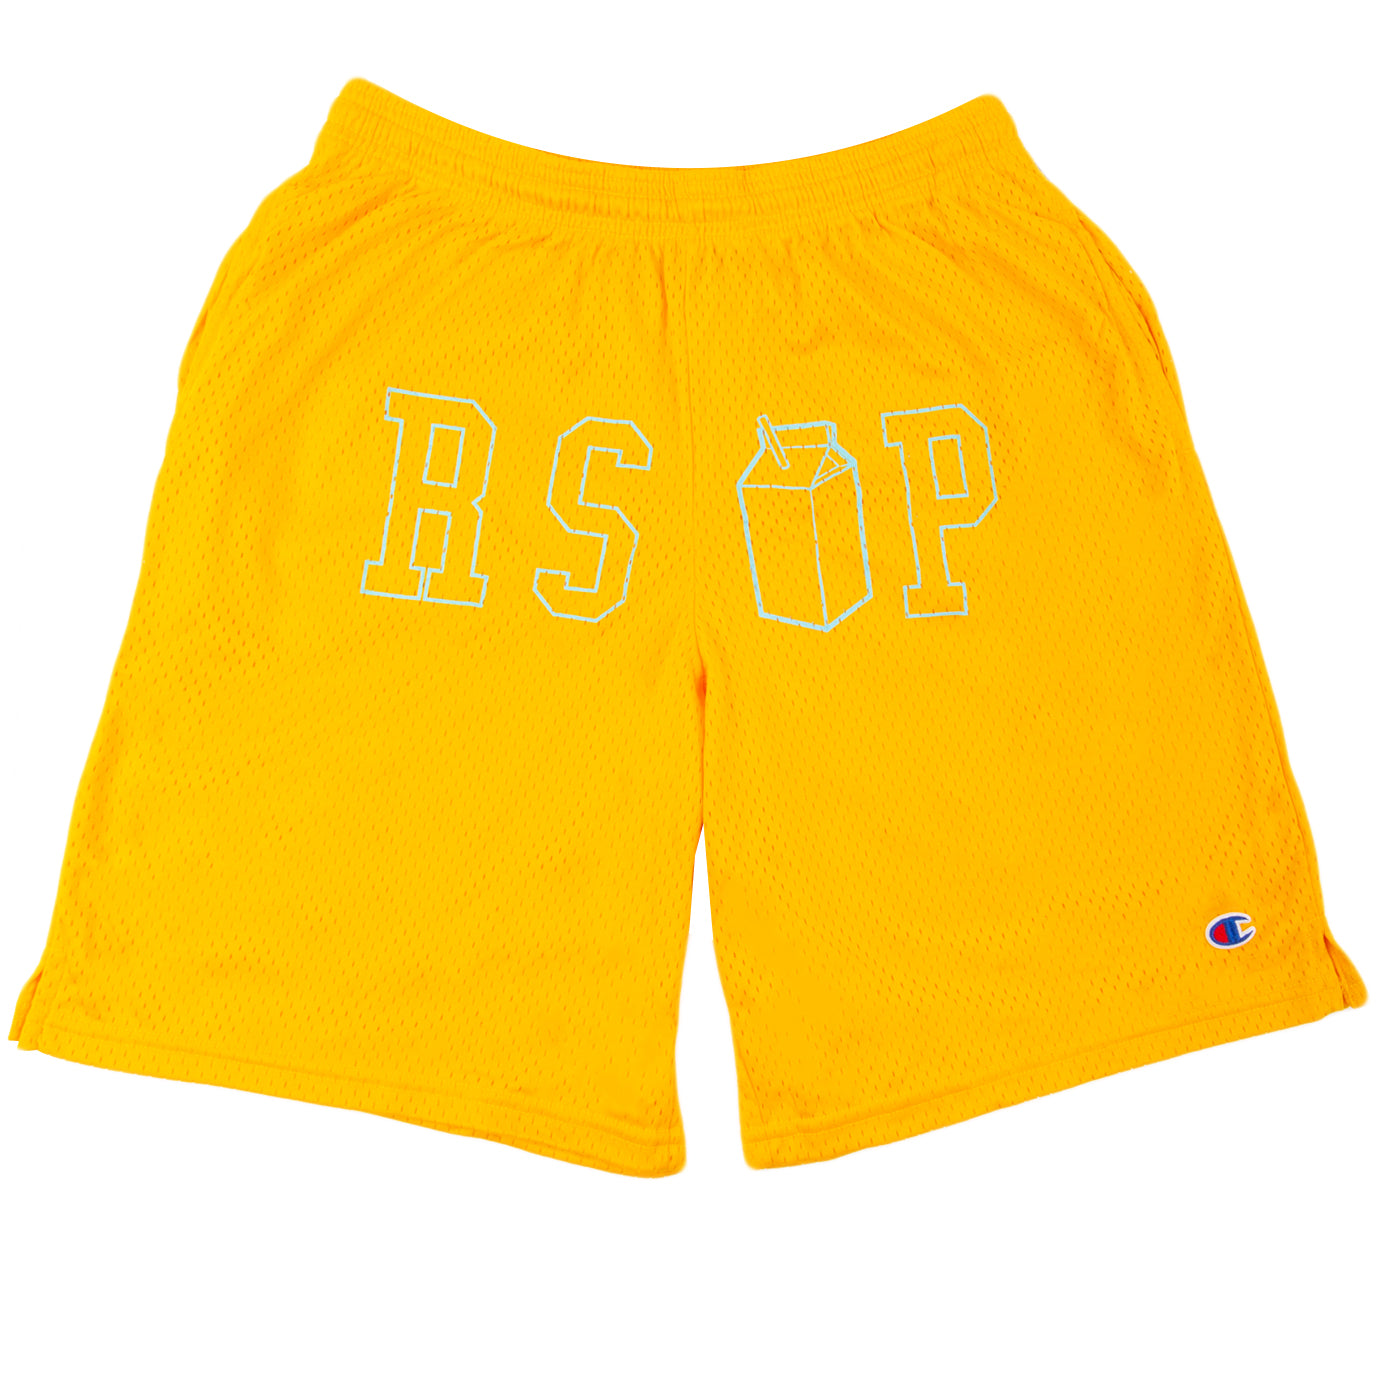 The LL x RSVP Shorts in Yellow